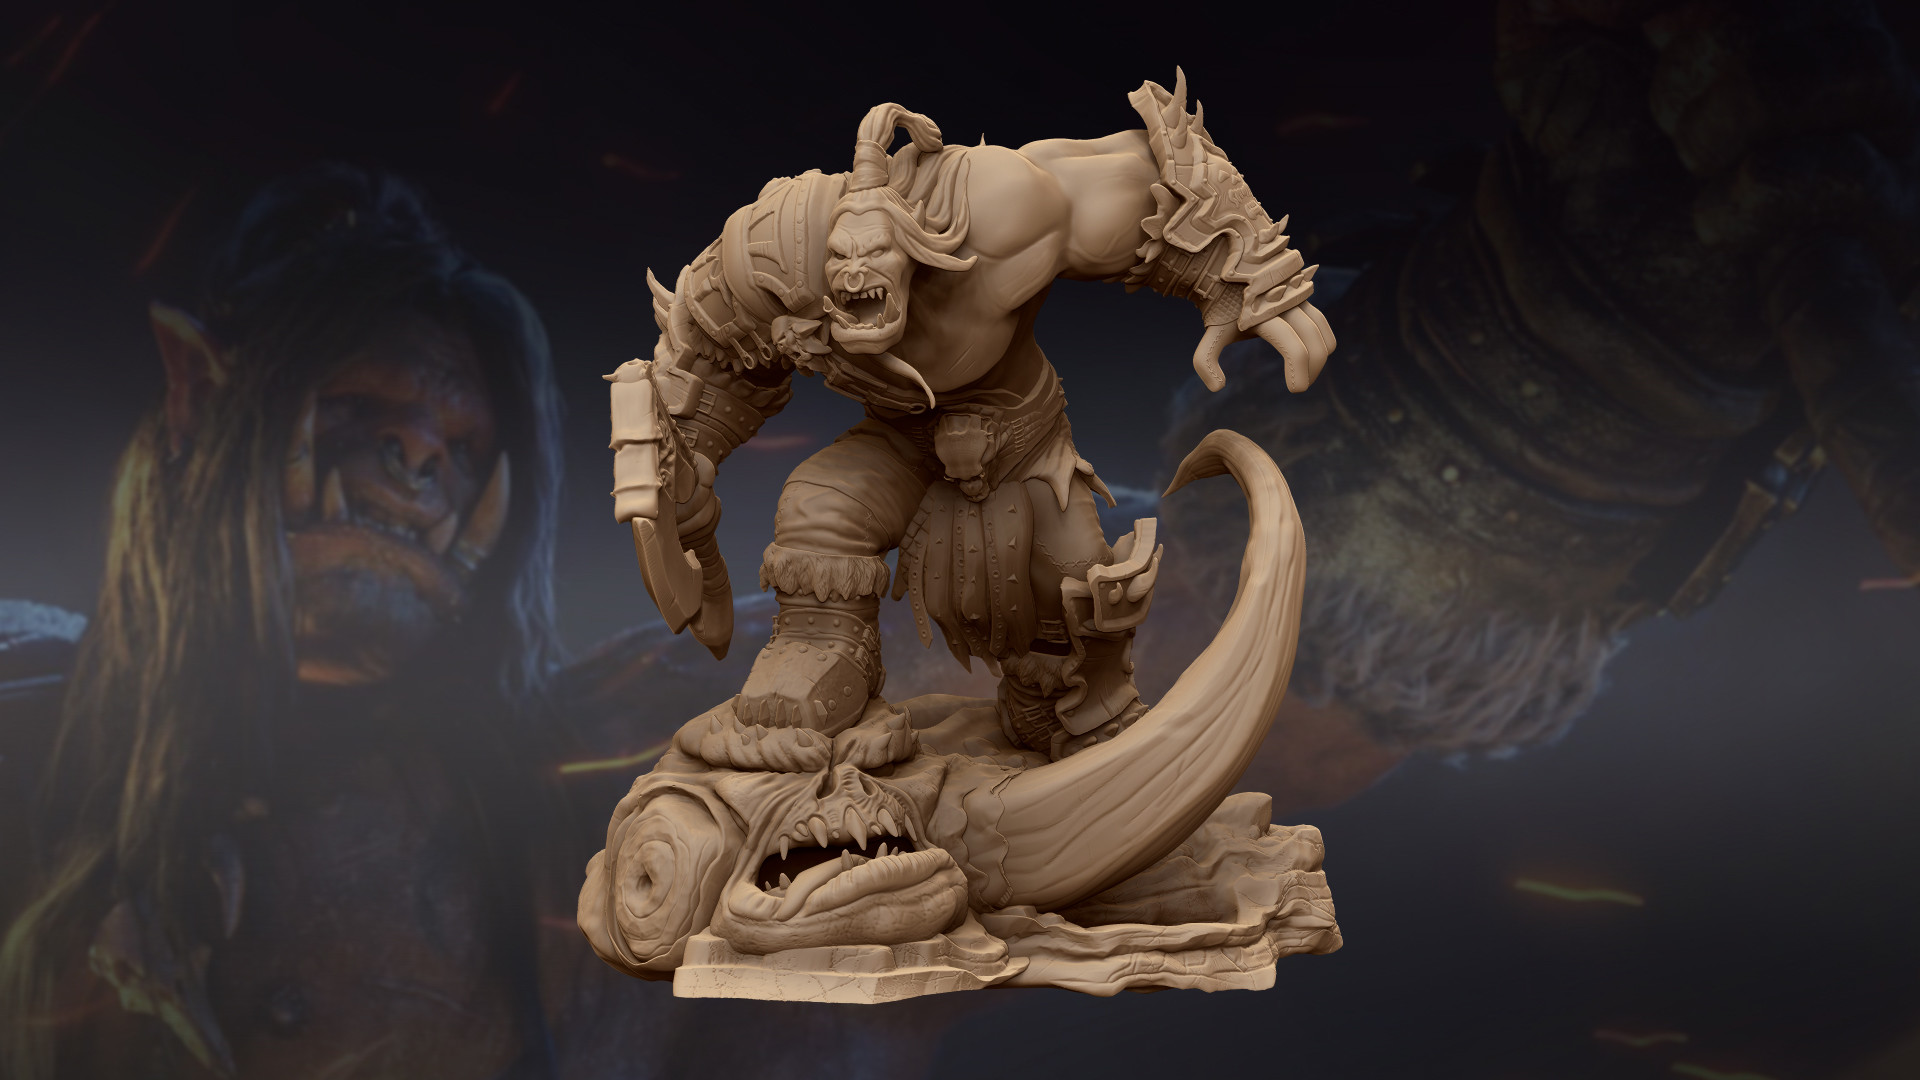 Warcraft Grommash Hellscream: STL files for 3D Printing